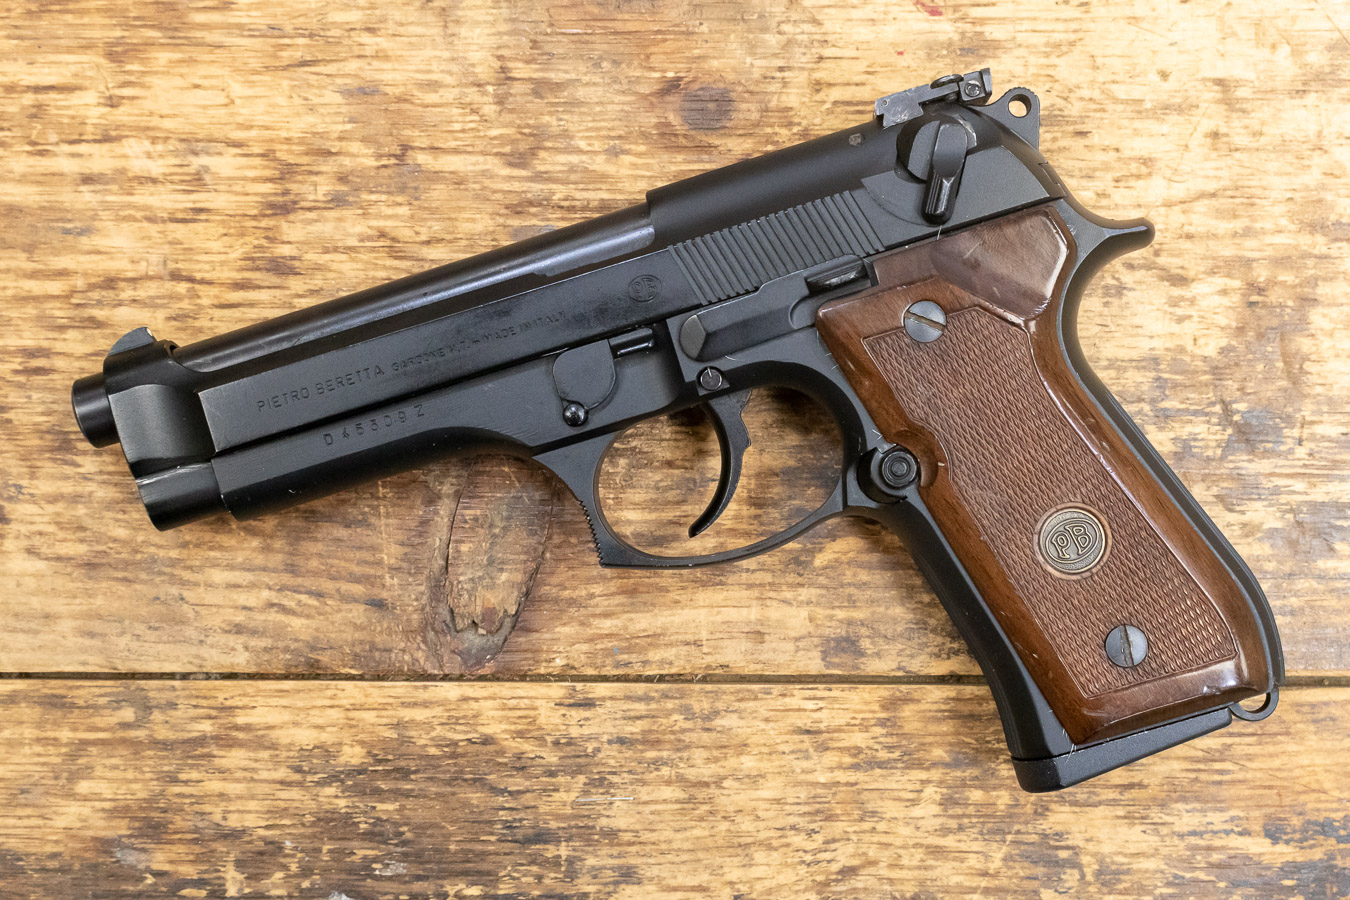 92F 9MM 15-ROUND TRADE-IN PISTOL WITH WOOD GRIPS